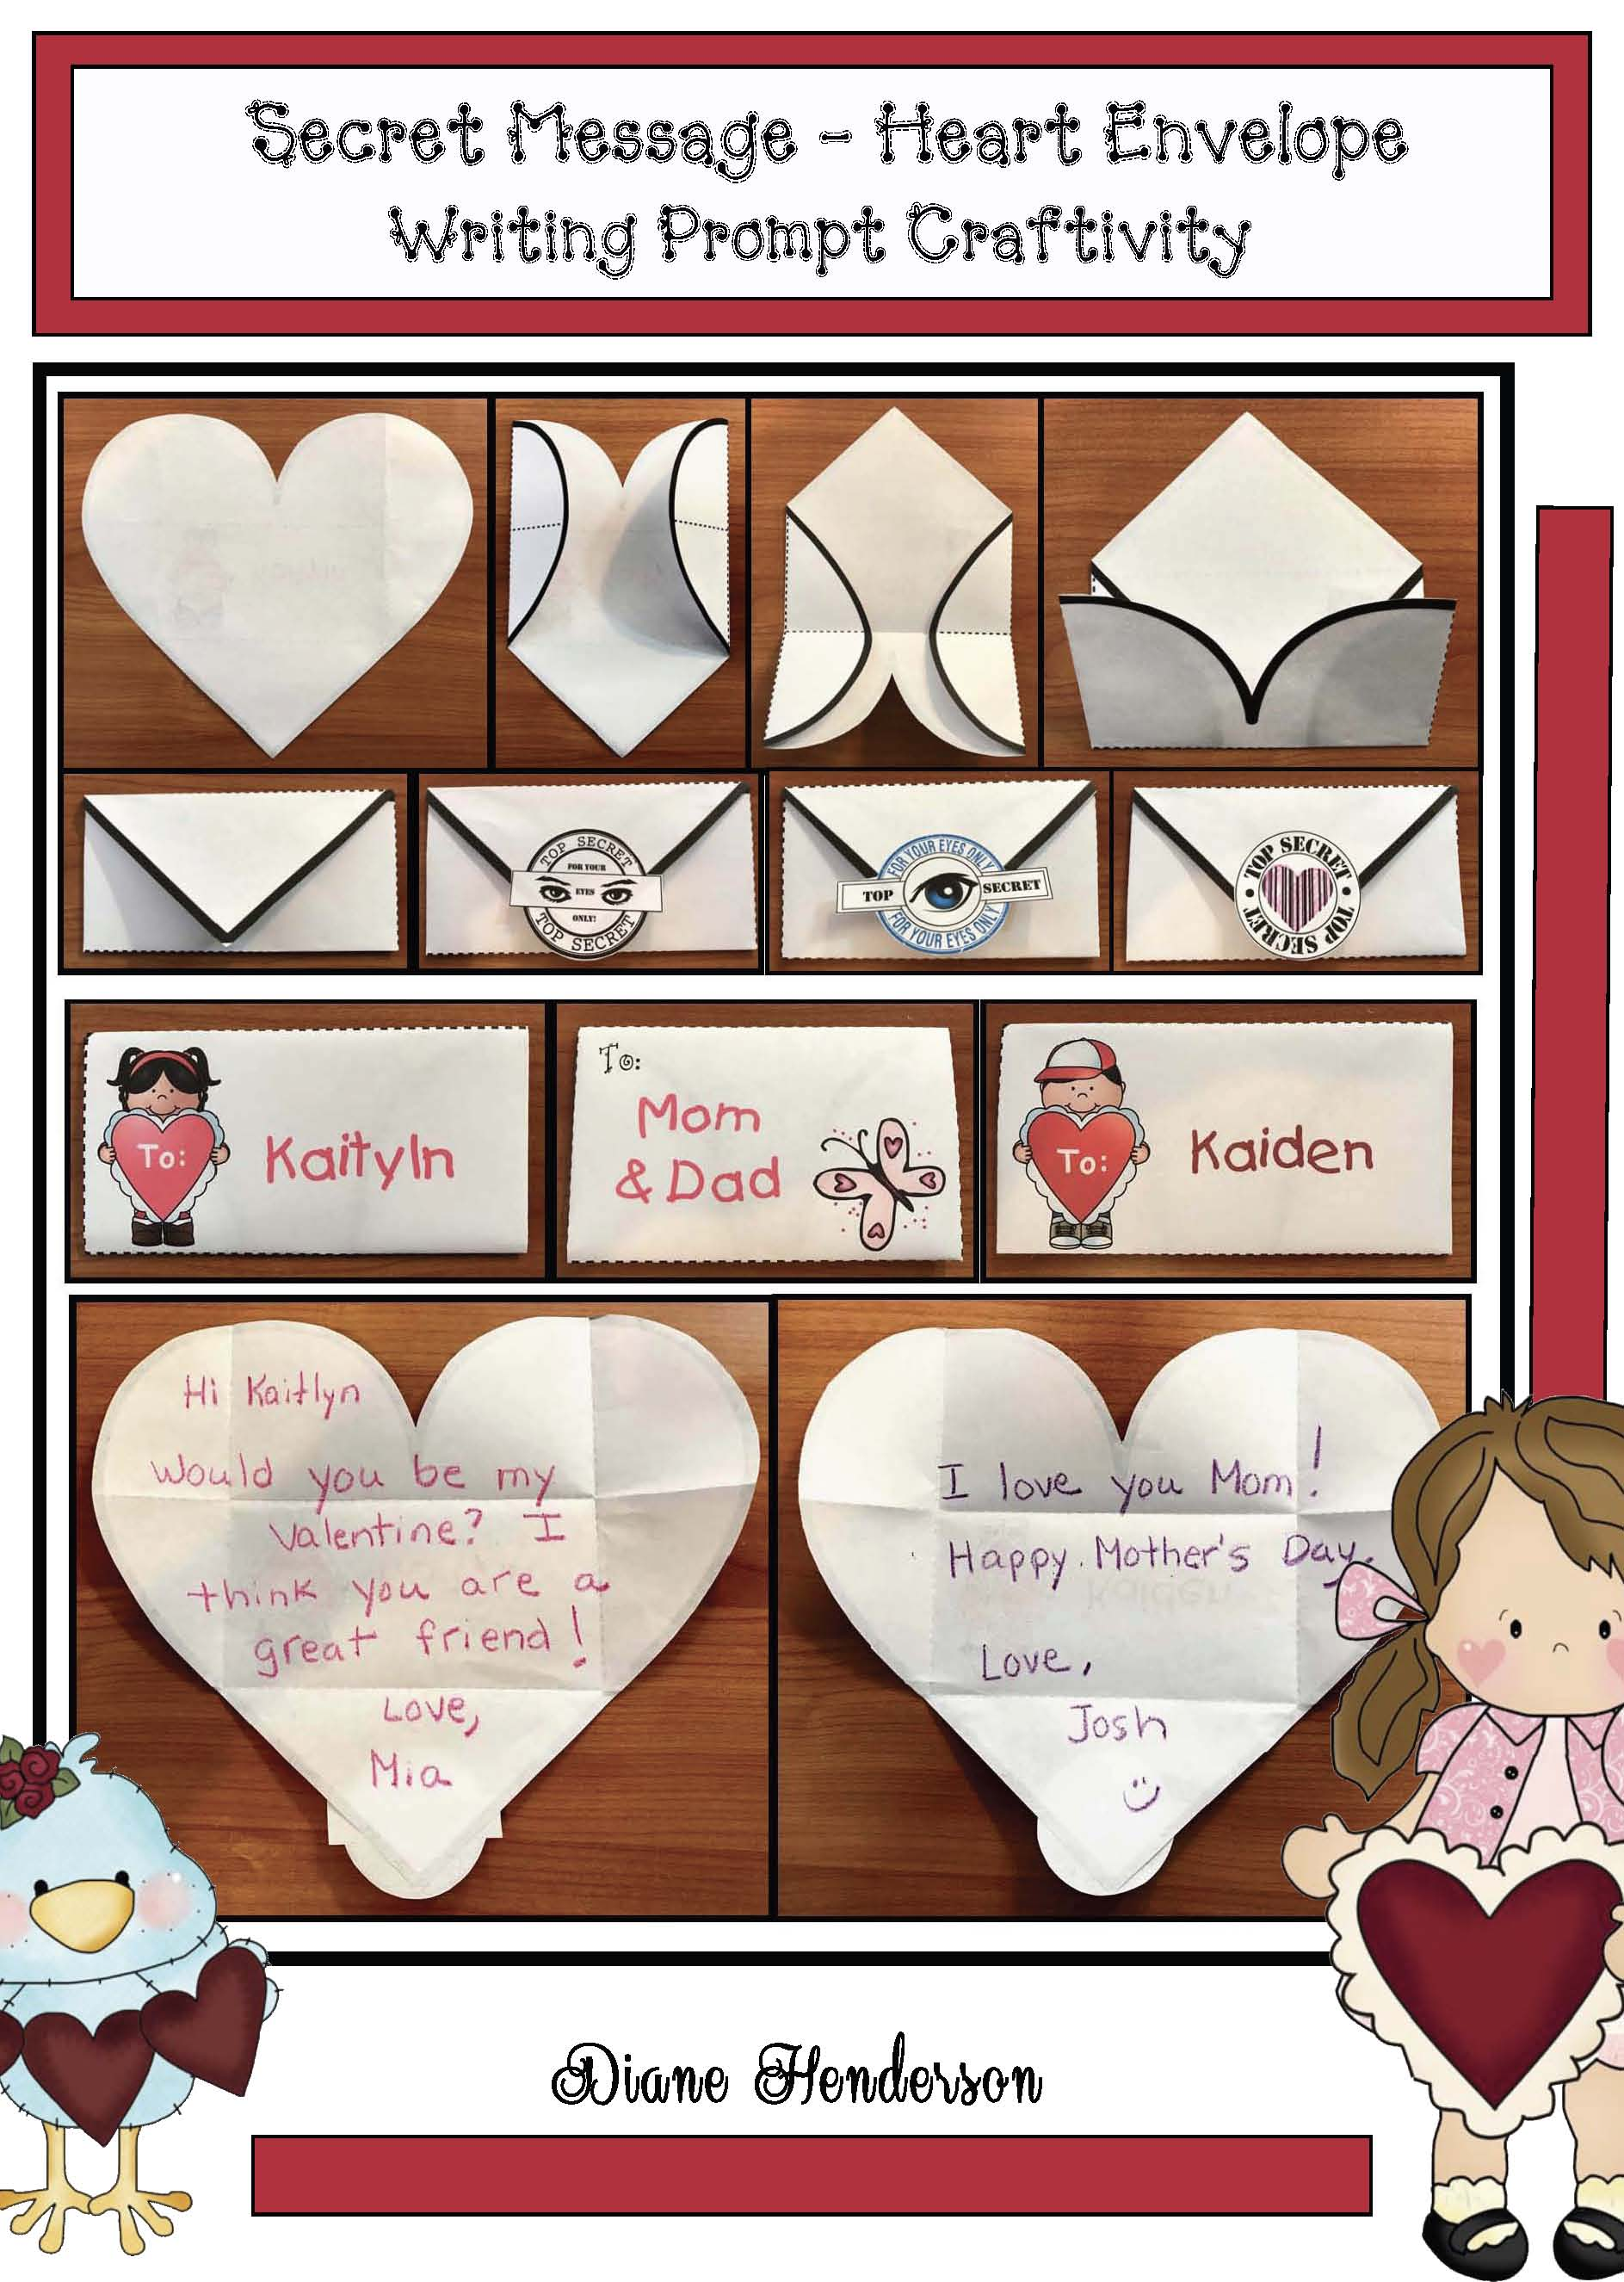 valentines day activities, valentines day cards, valentines day crafts, Mother's day activities, father's day activities, mothers day cards,  veterans day activities, grandparents day activities